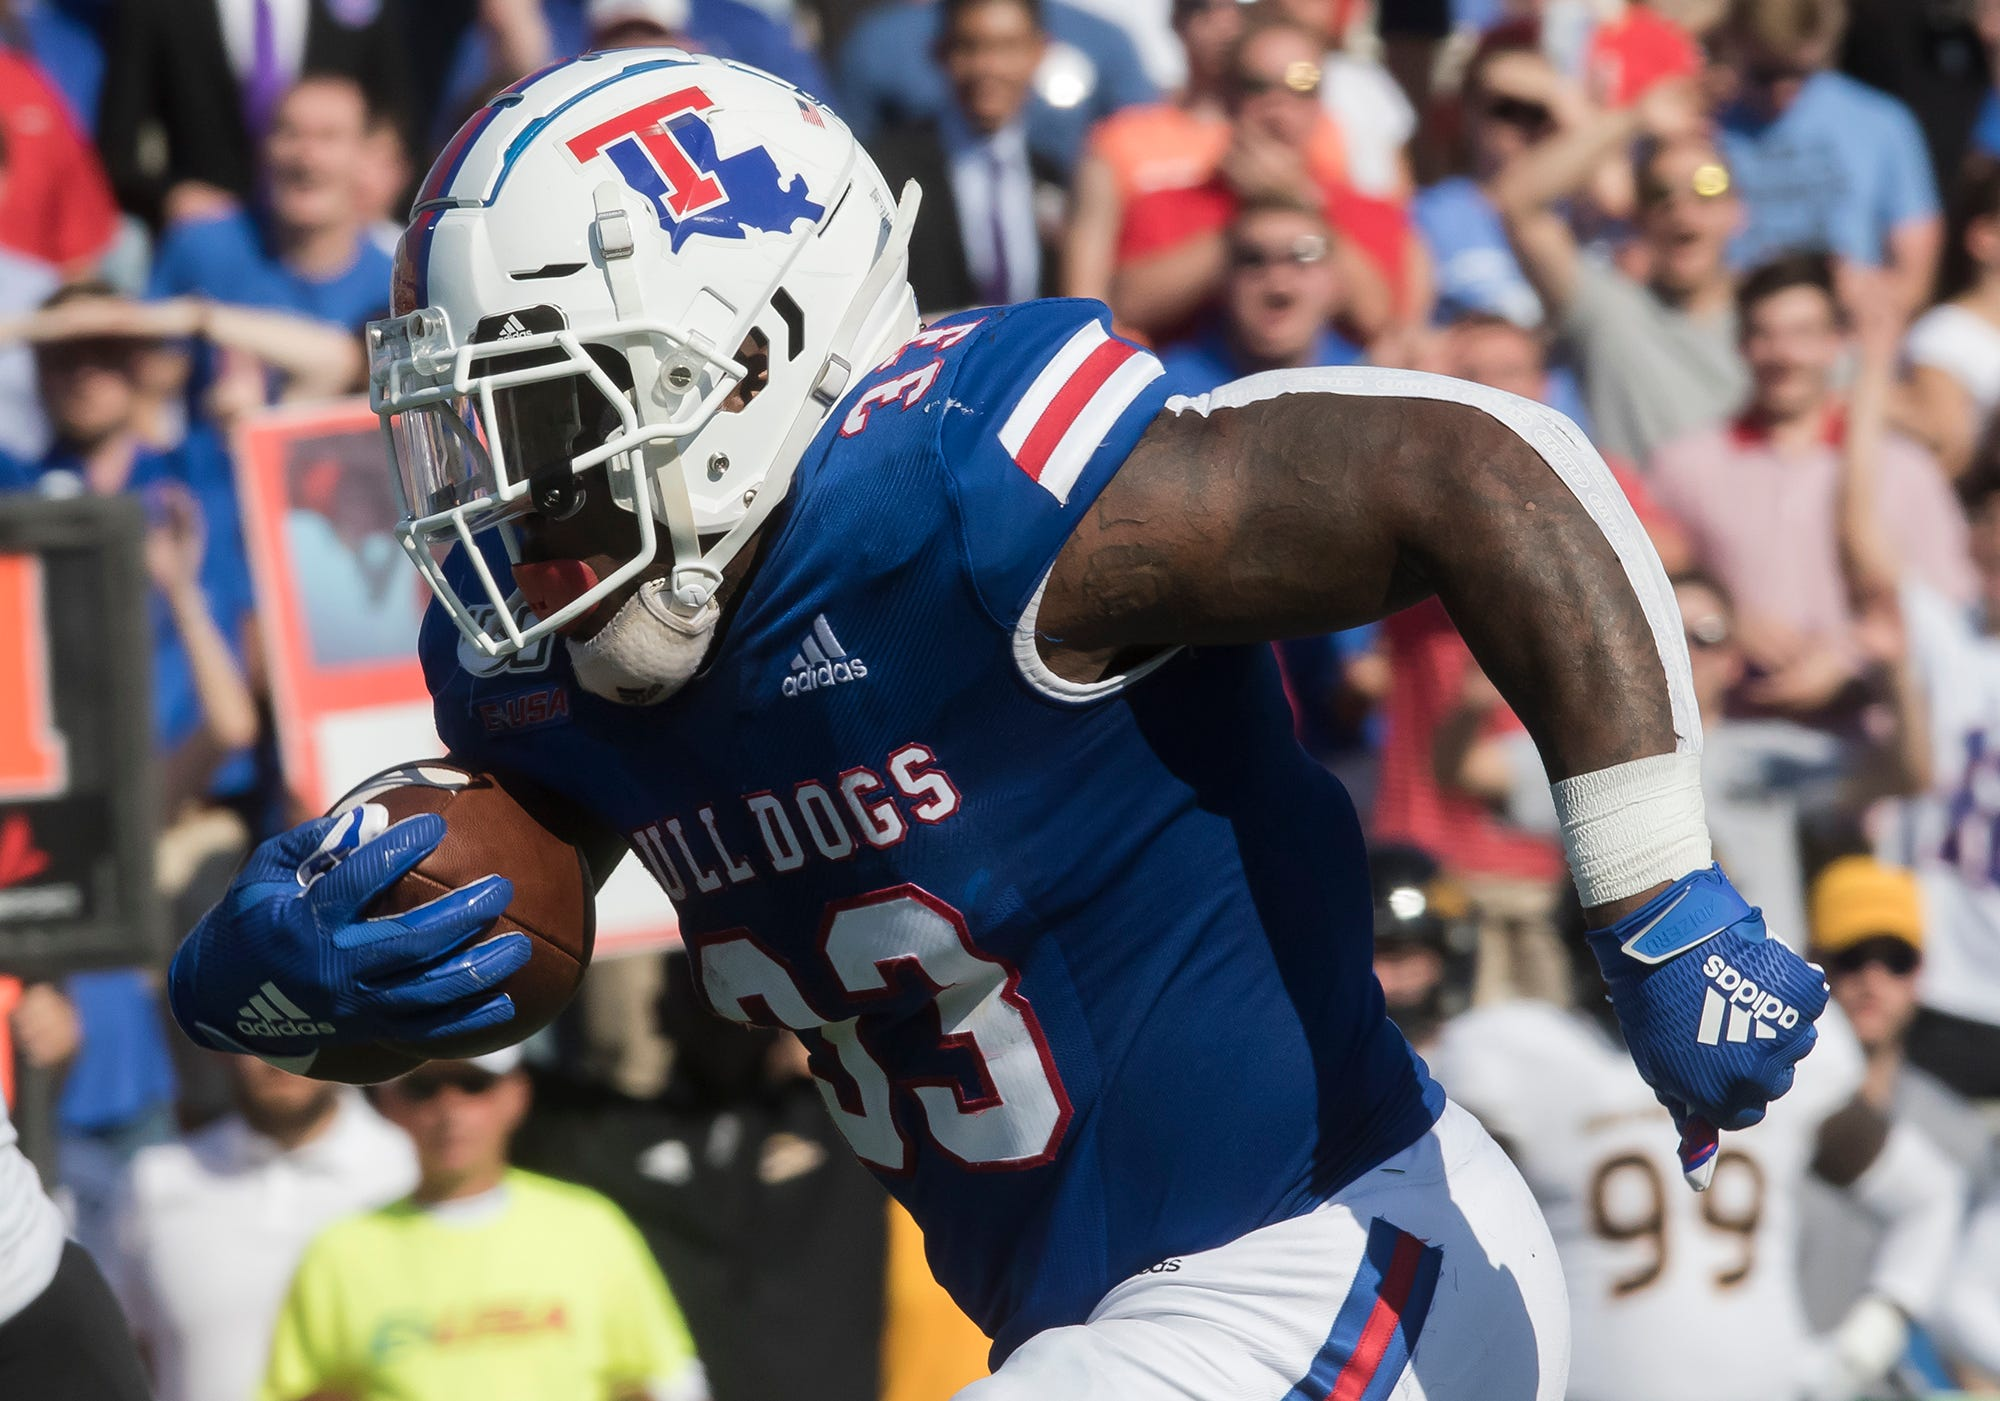 Game Postponed What Are The La Tech Vs Baylor Football Betting Odds